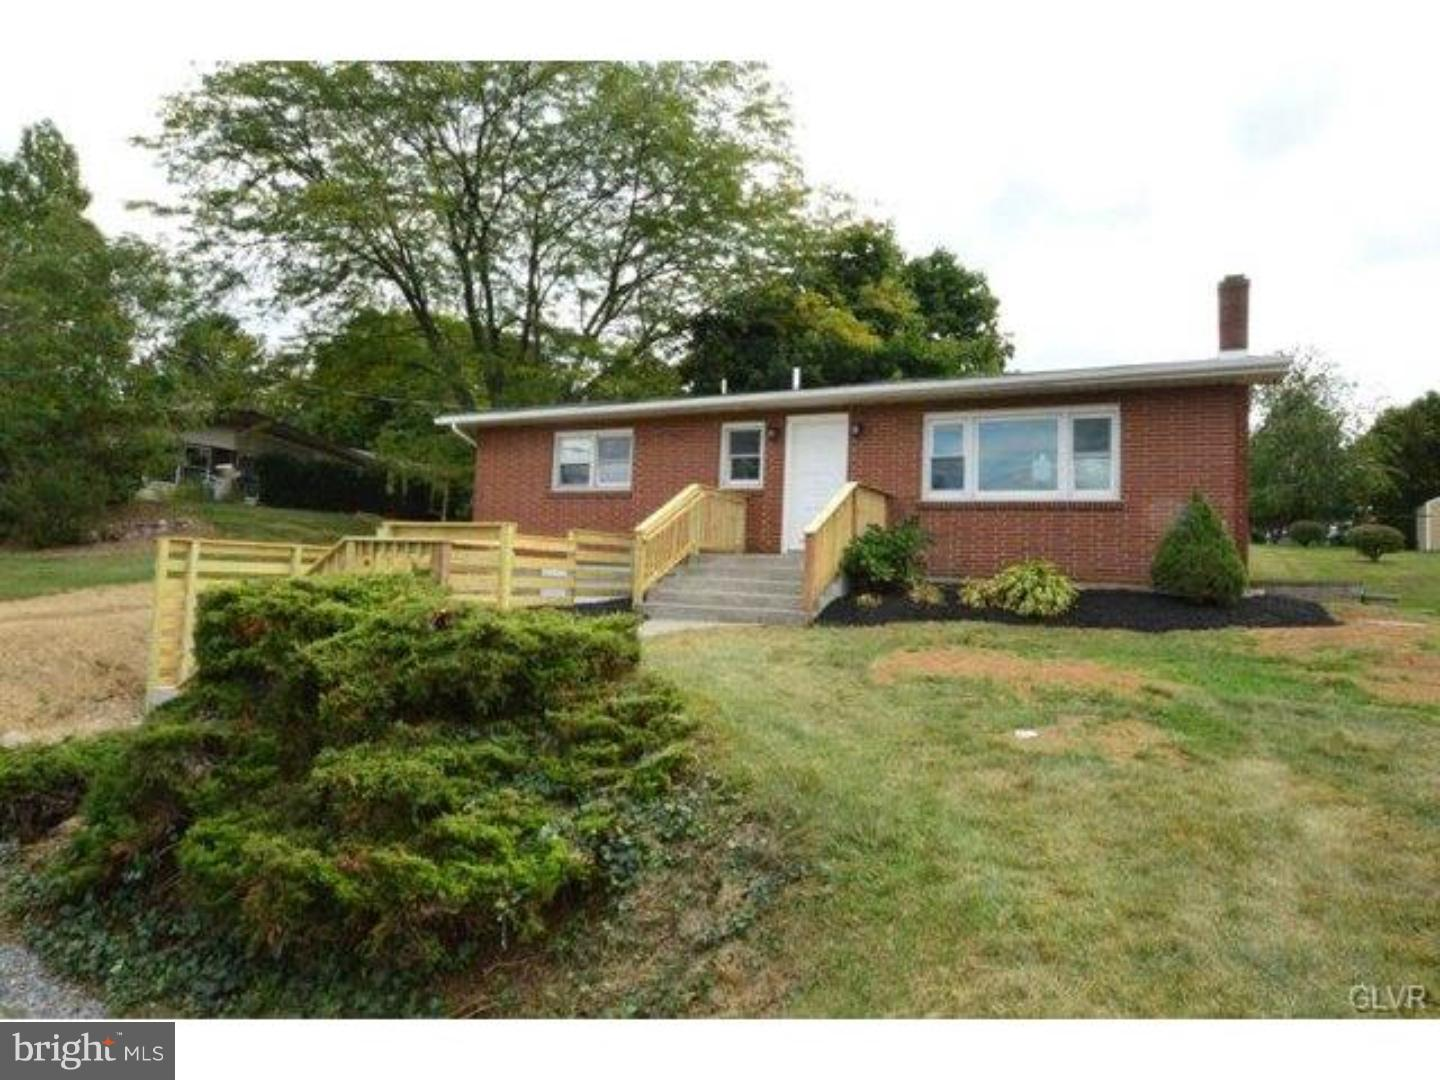 5874 OLD CARRIAGE ROAD, BATH, PA 18014